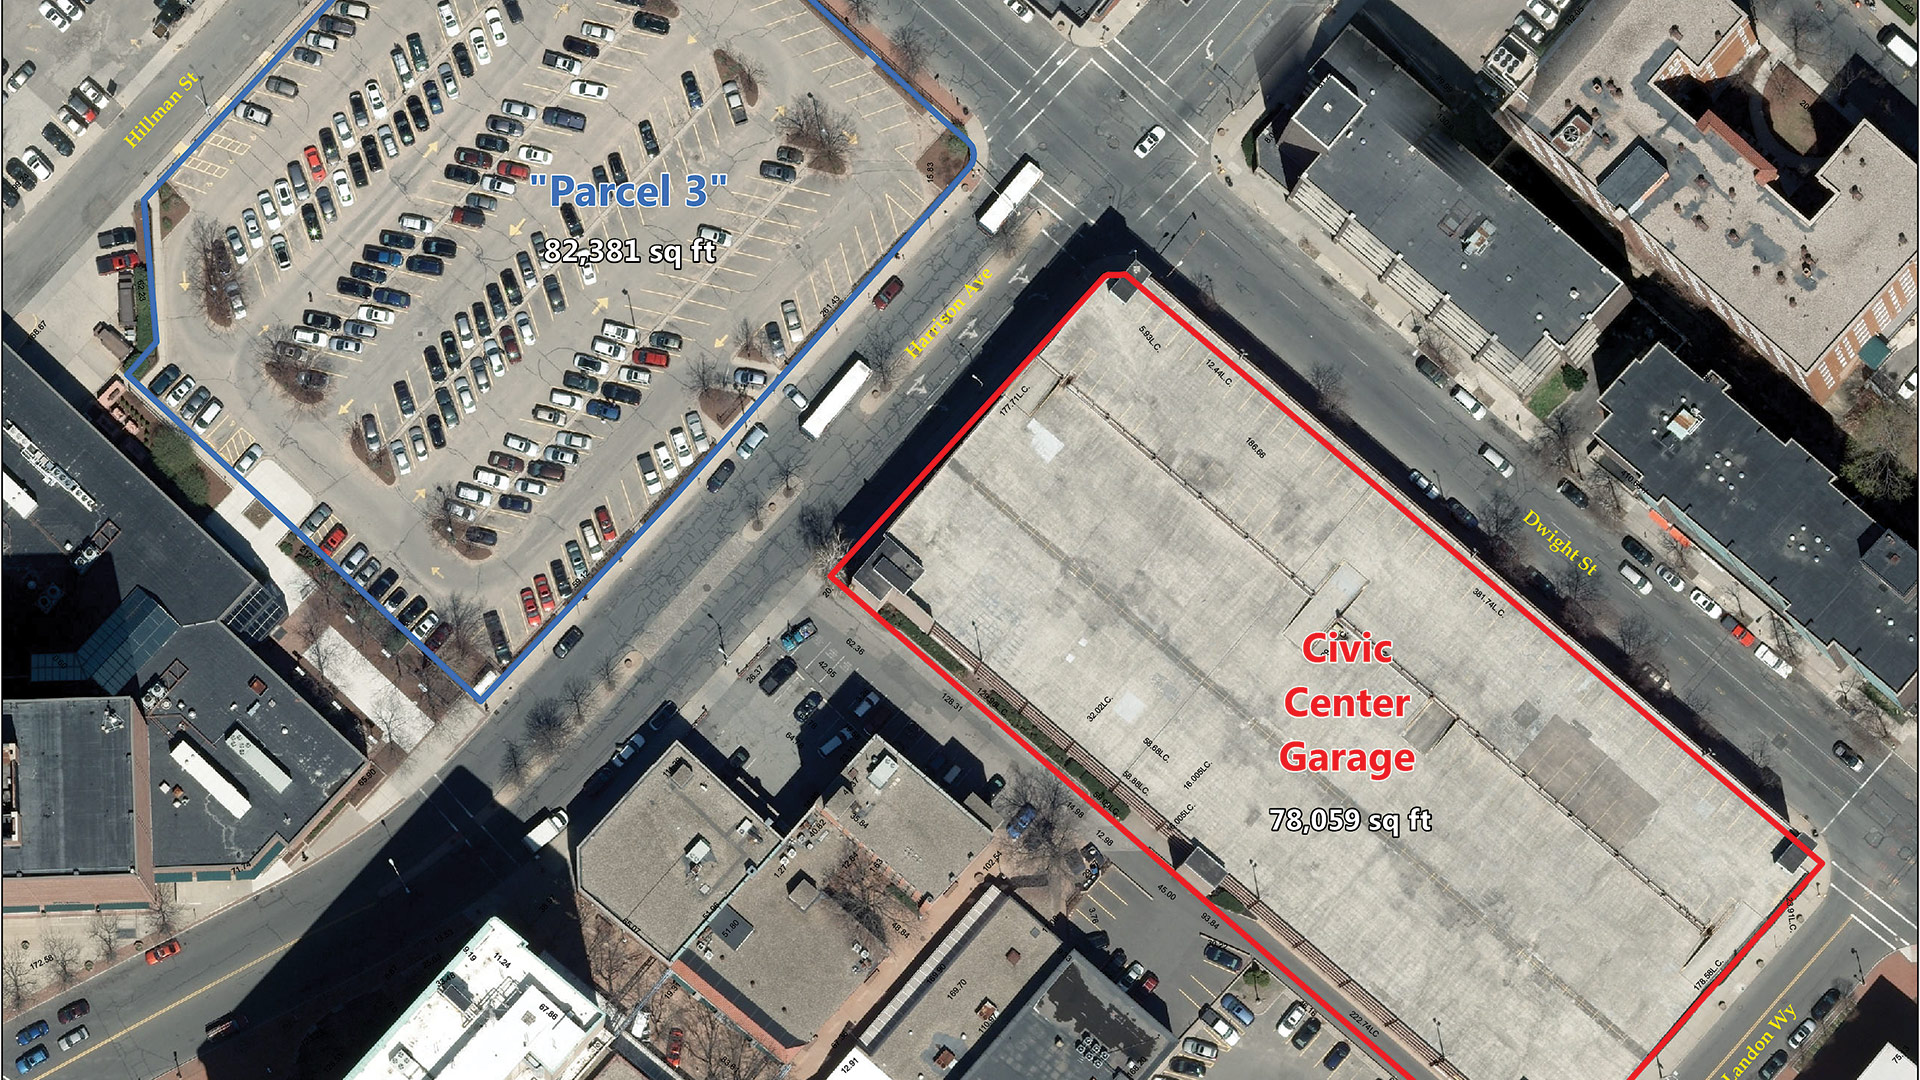 Parcel 3 — better known as the parking lot behind the TD Bank building